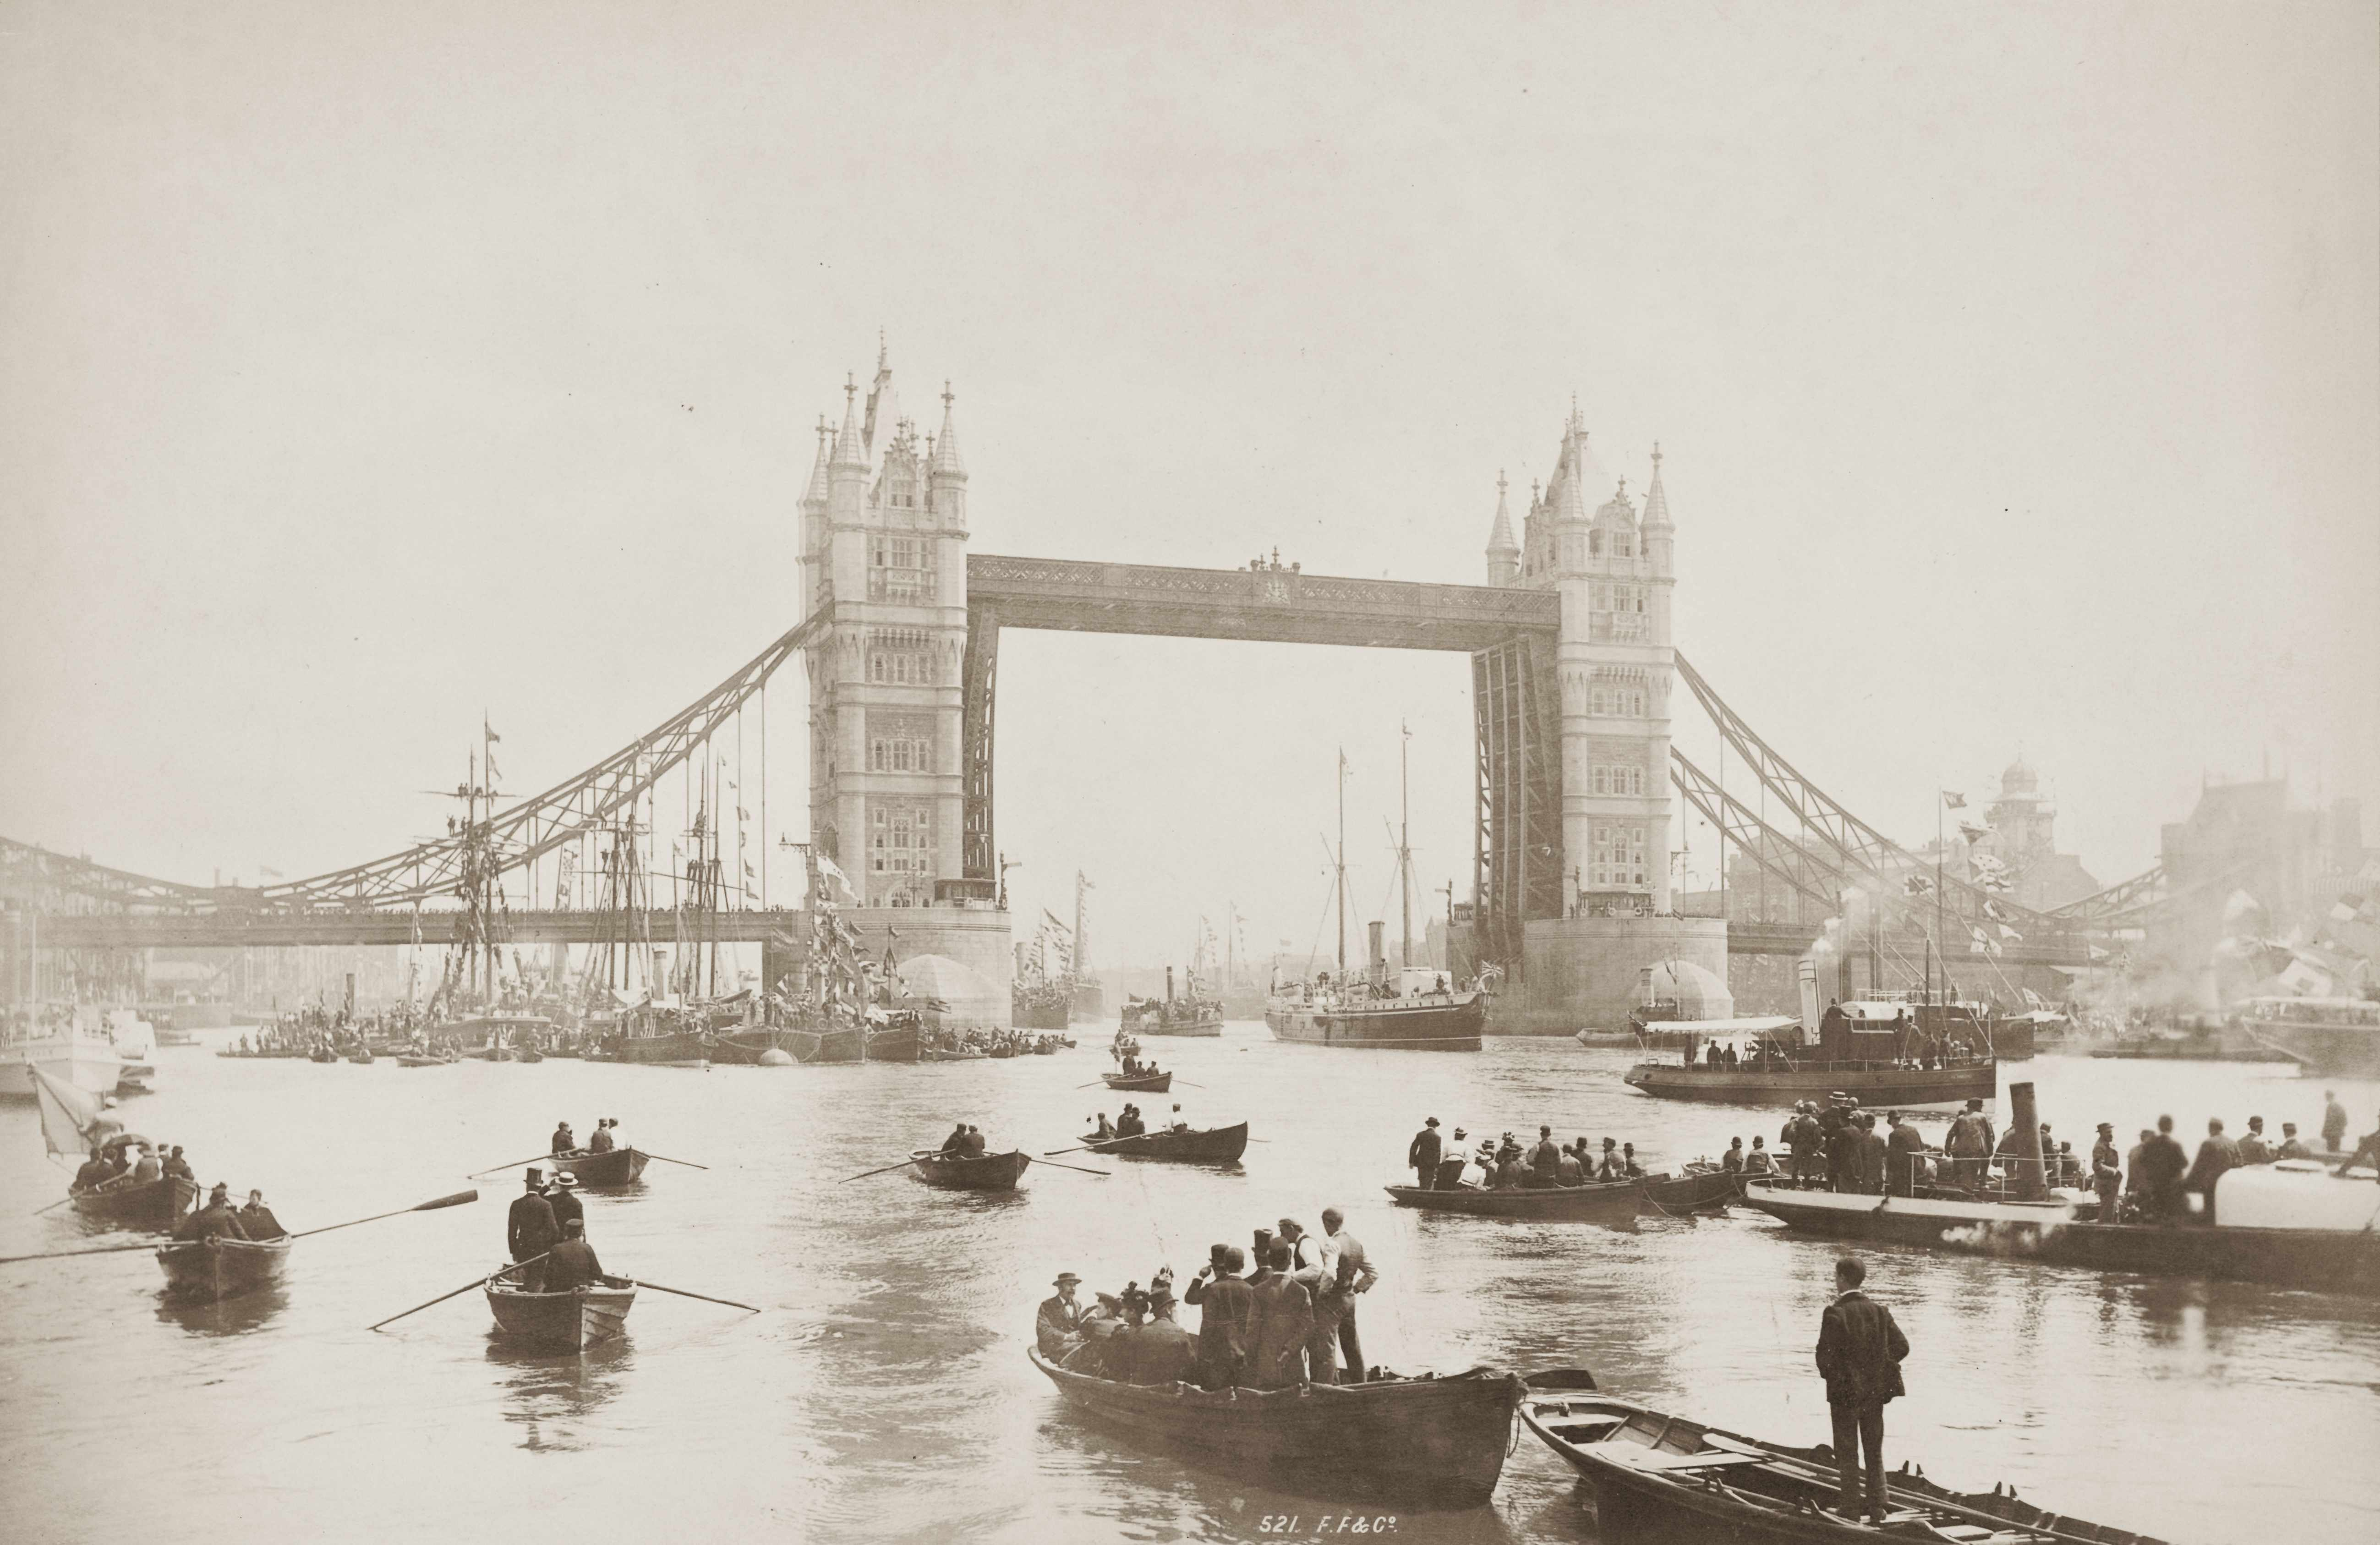 The opening ceremony of London's Tower Bridge on 30 June 1894. The bridge became a symbol of London's importance as a global maritime hub (Photo by Francis Frith/Hulton Archive/Getty Images)